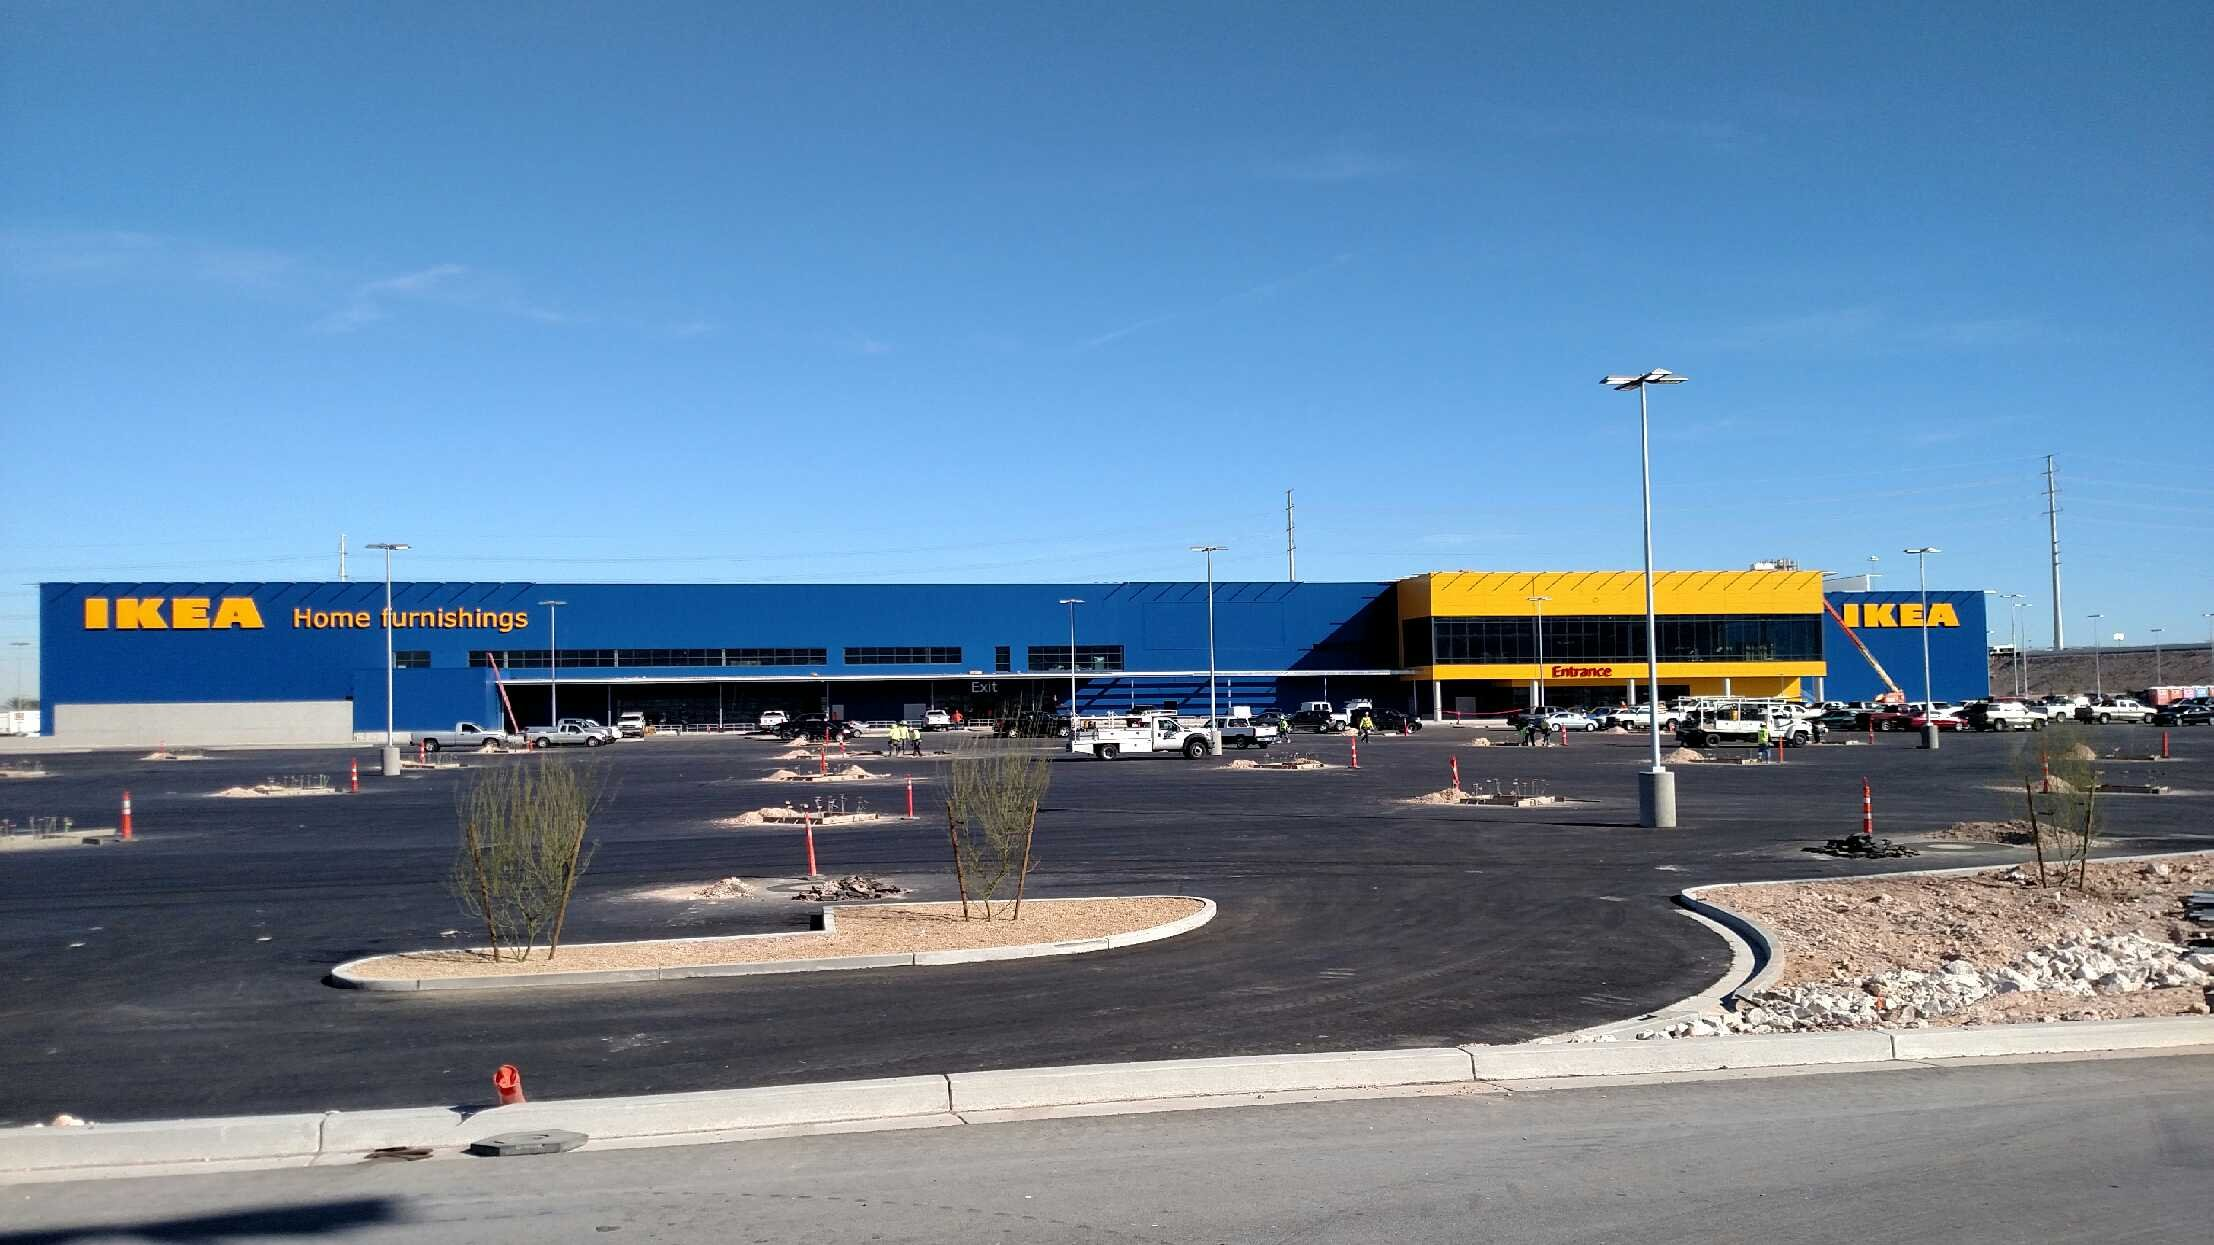 ikea sets grand opening date for las vegas location wsmv